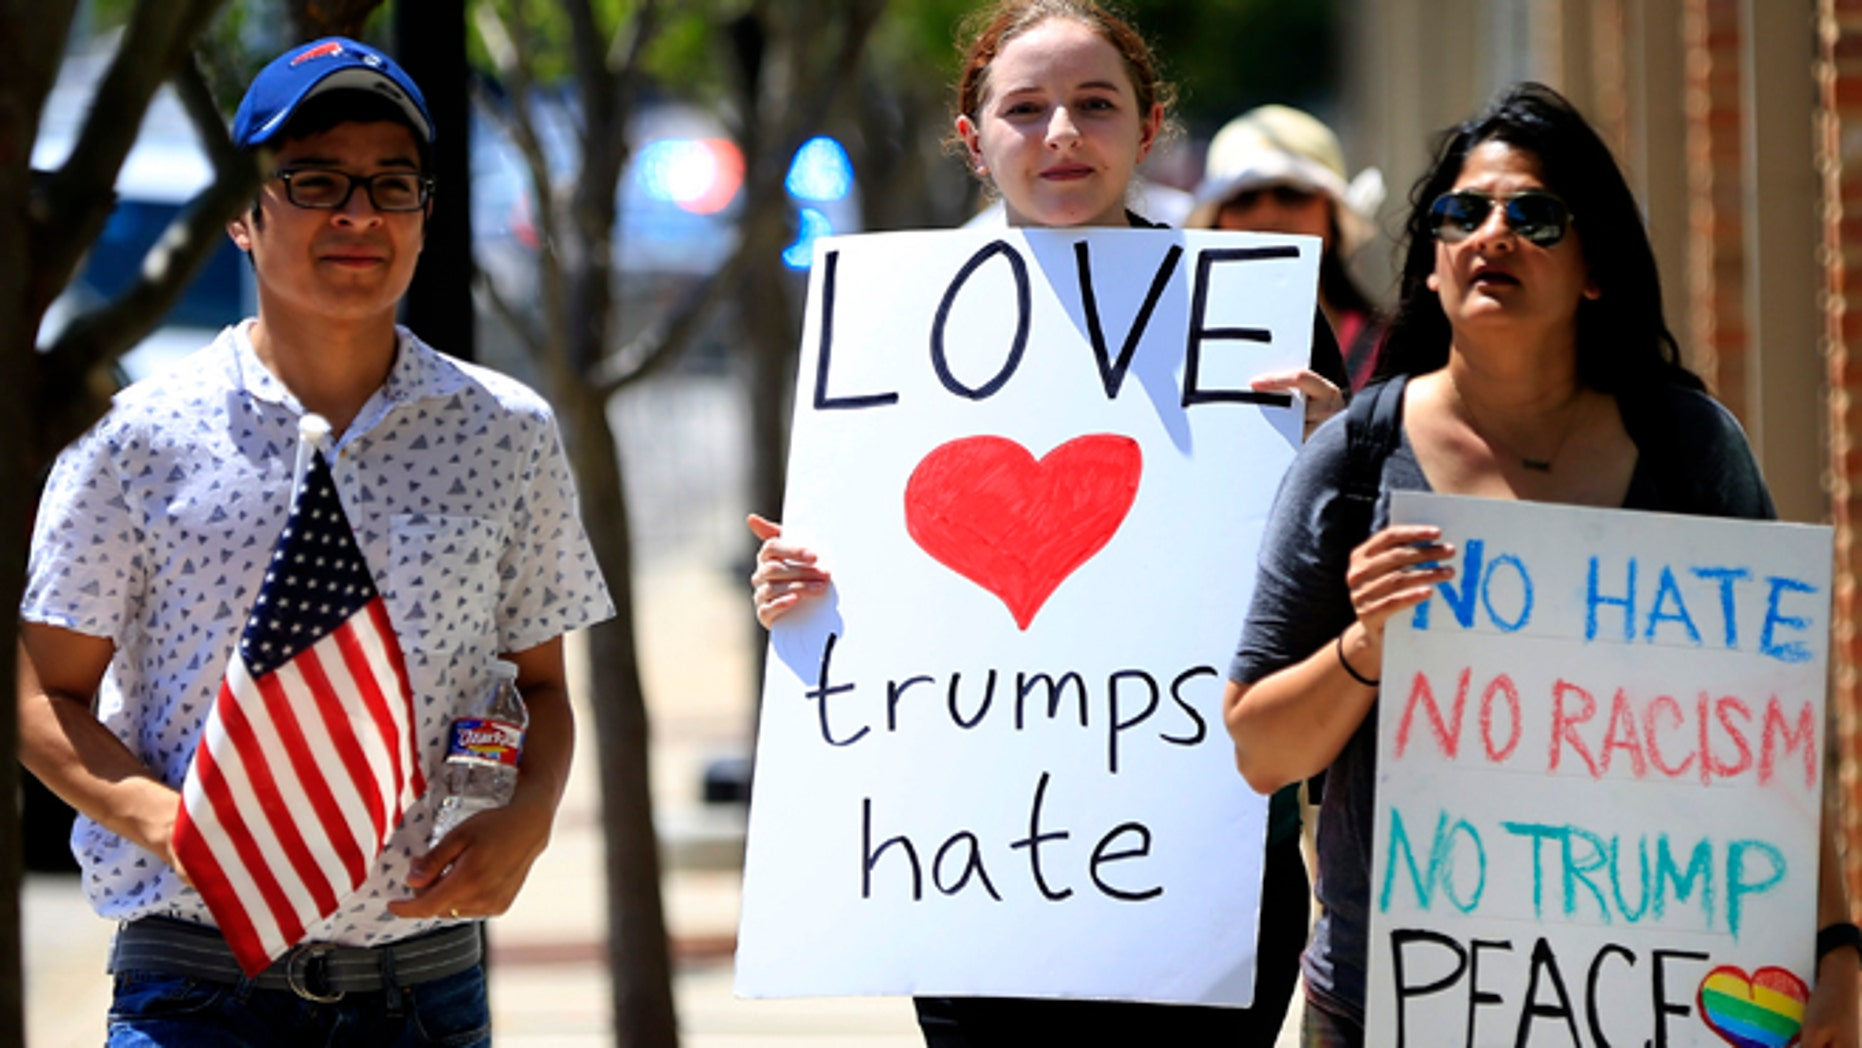 DALLAS, TX - JUNE 16: Protestors walk before Republican presidential candidate Donald Trump's rally on June 16, 2016 at Gilley's in Dallas, Texas. Trump arrived in Texas on Thursday with plans to hold rallies and fundraisers. (Photo by Ron Jenkins/Getty Images)